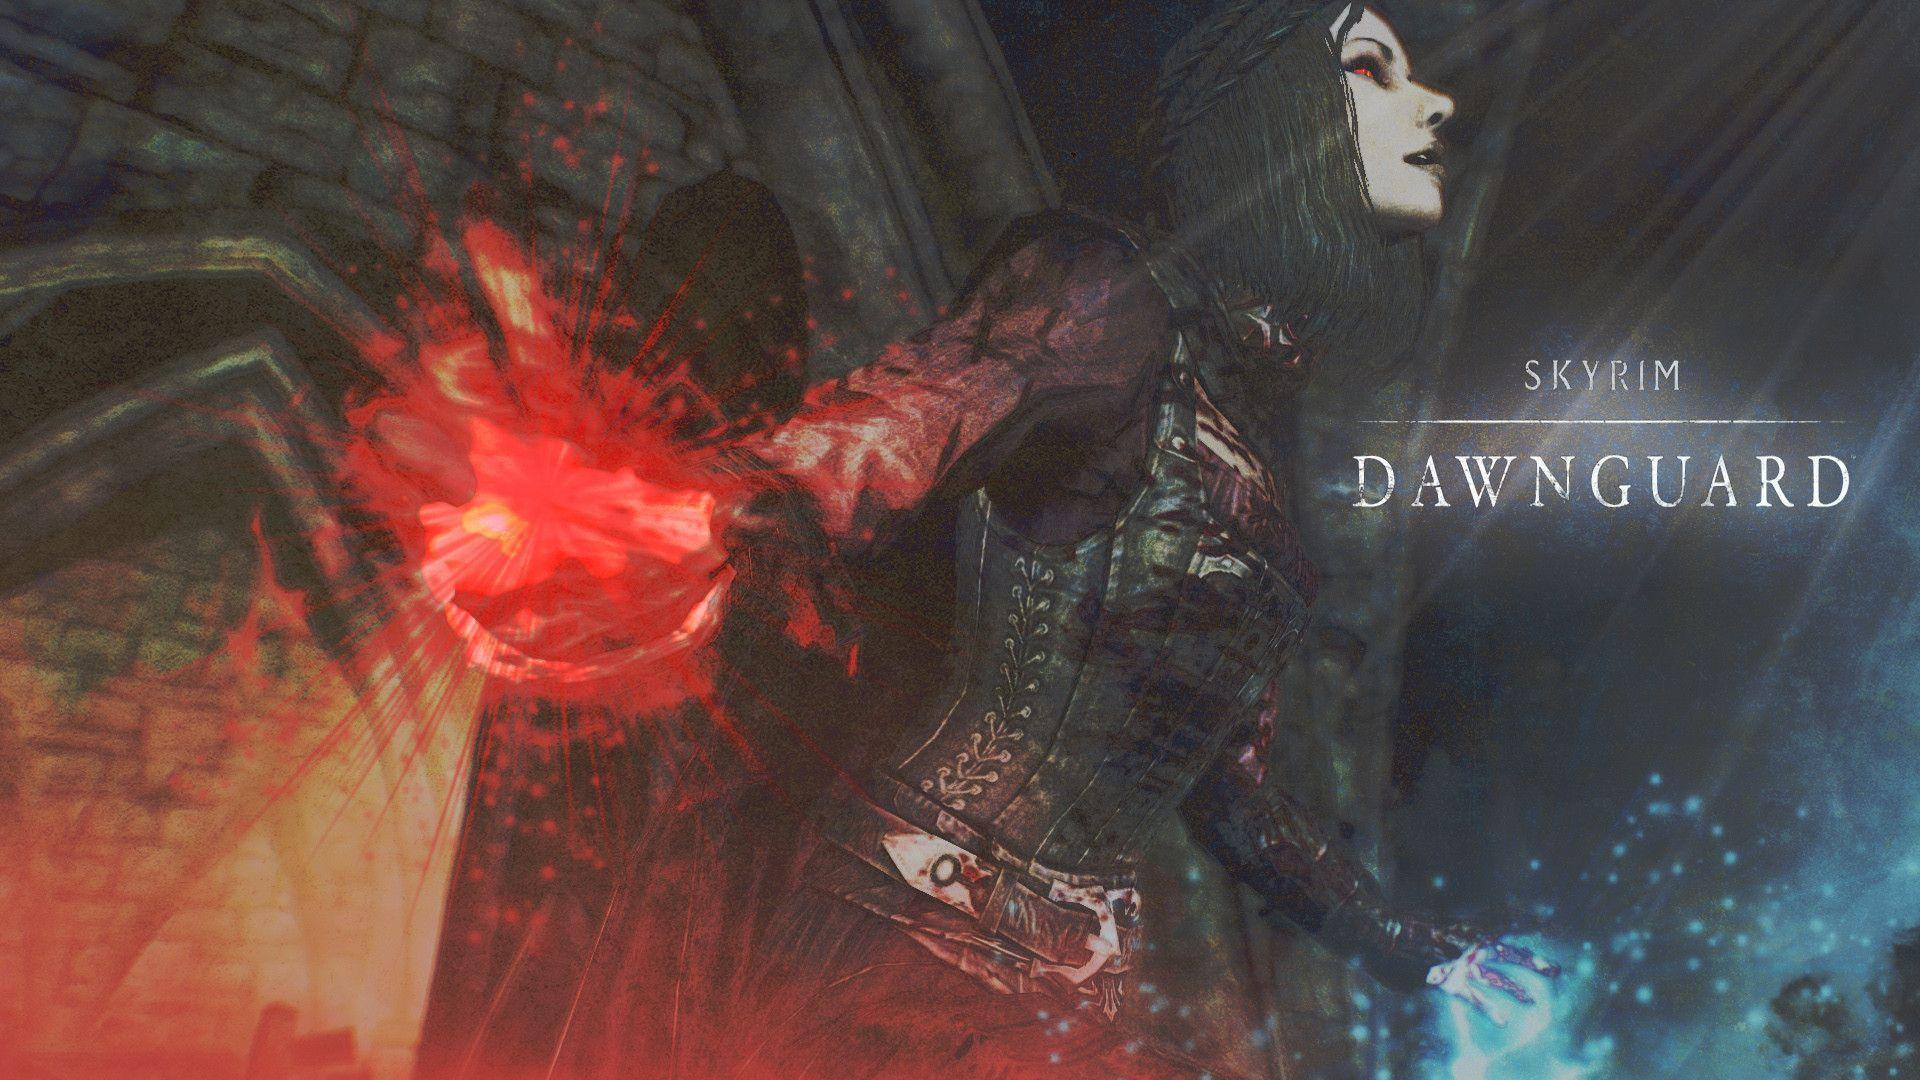 Dawnguard wallpapers wallpaper cave skyrim dawnguard wallpapers wallpaper cave voltagebd Choice Image